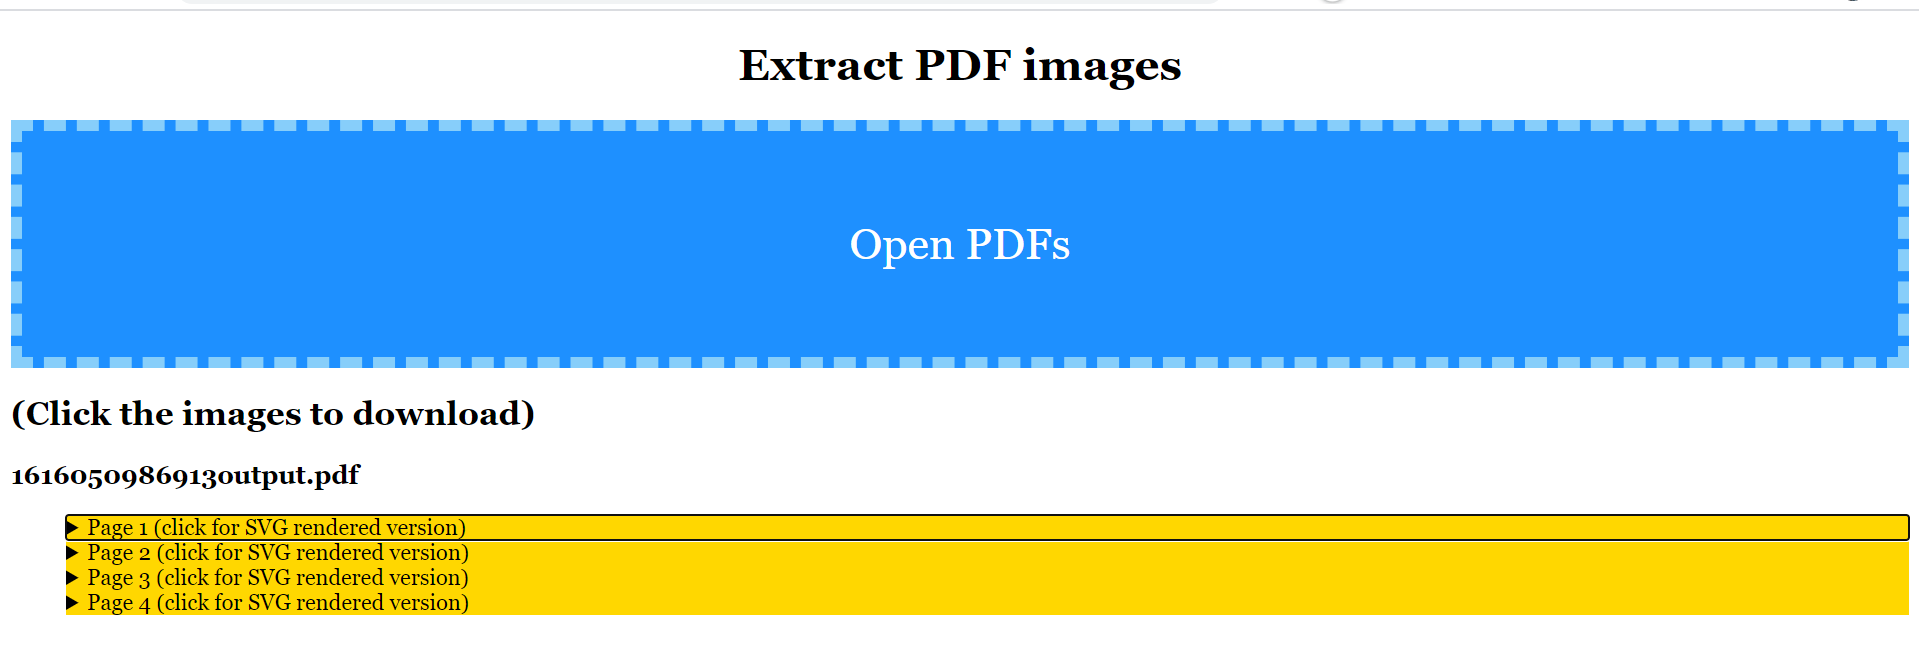 Vue.js Mozilla PDF.js dist Library Example to Extract all Images From PDF Documents in Browser Using Javascript Full Project For Beginners